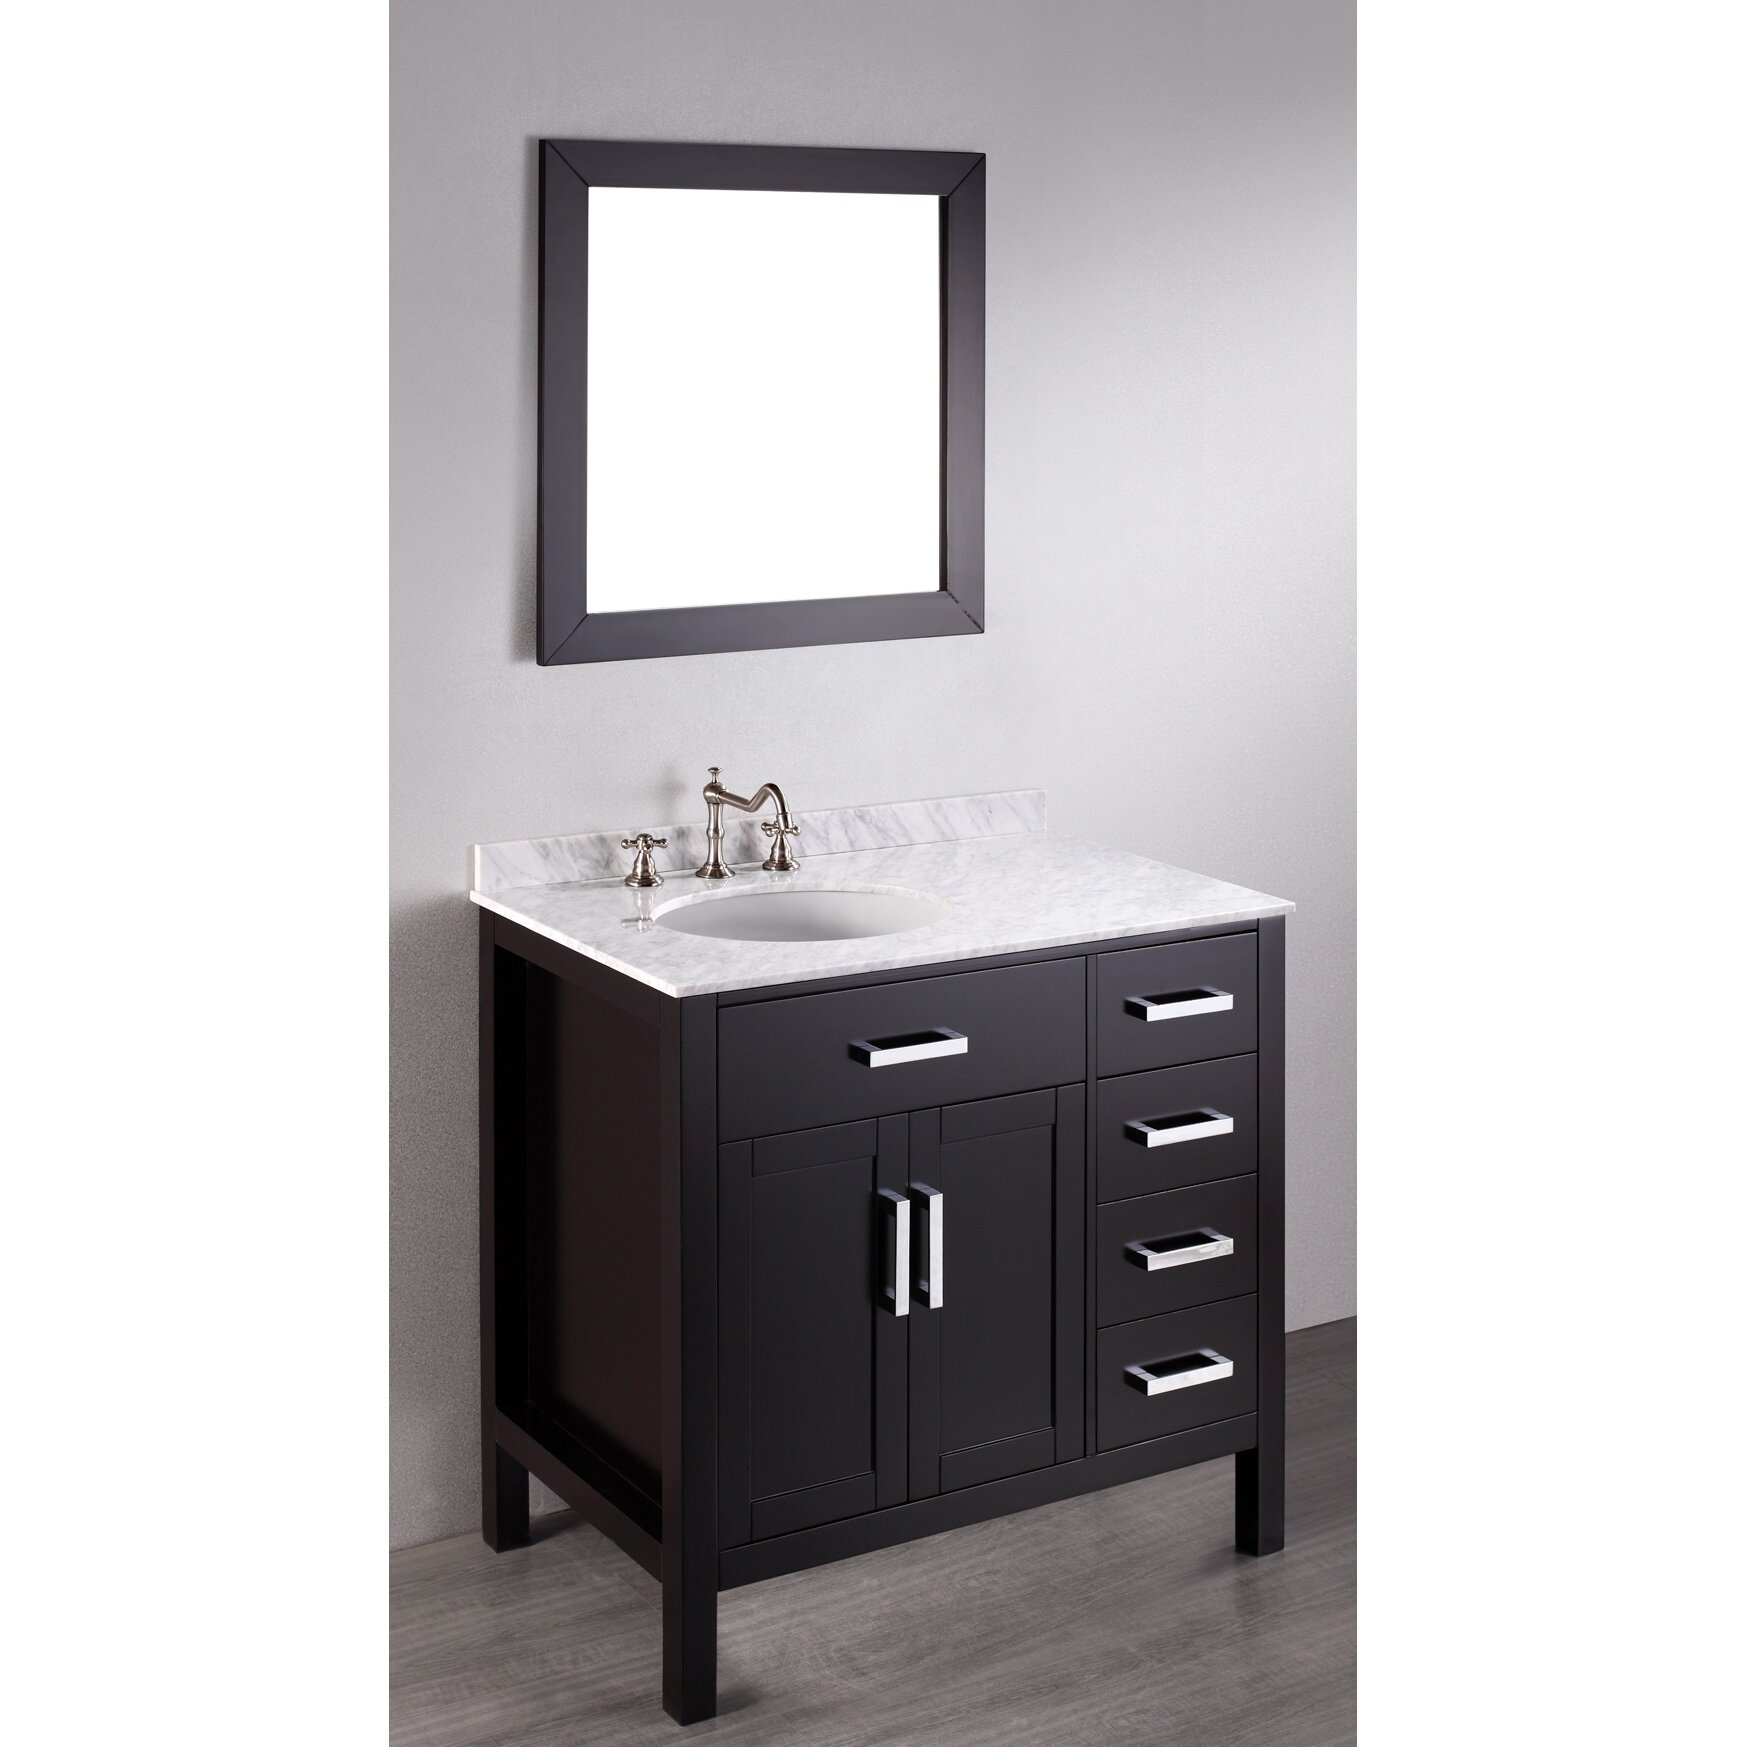 Bosconi contemporary 36 single bathroom vanity set with mirror reviews wayfair - Kona modern bathroom vanity set ...